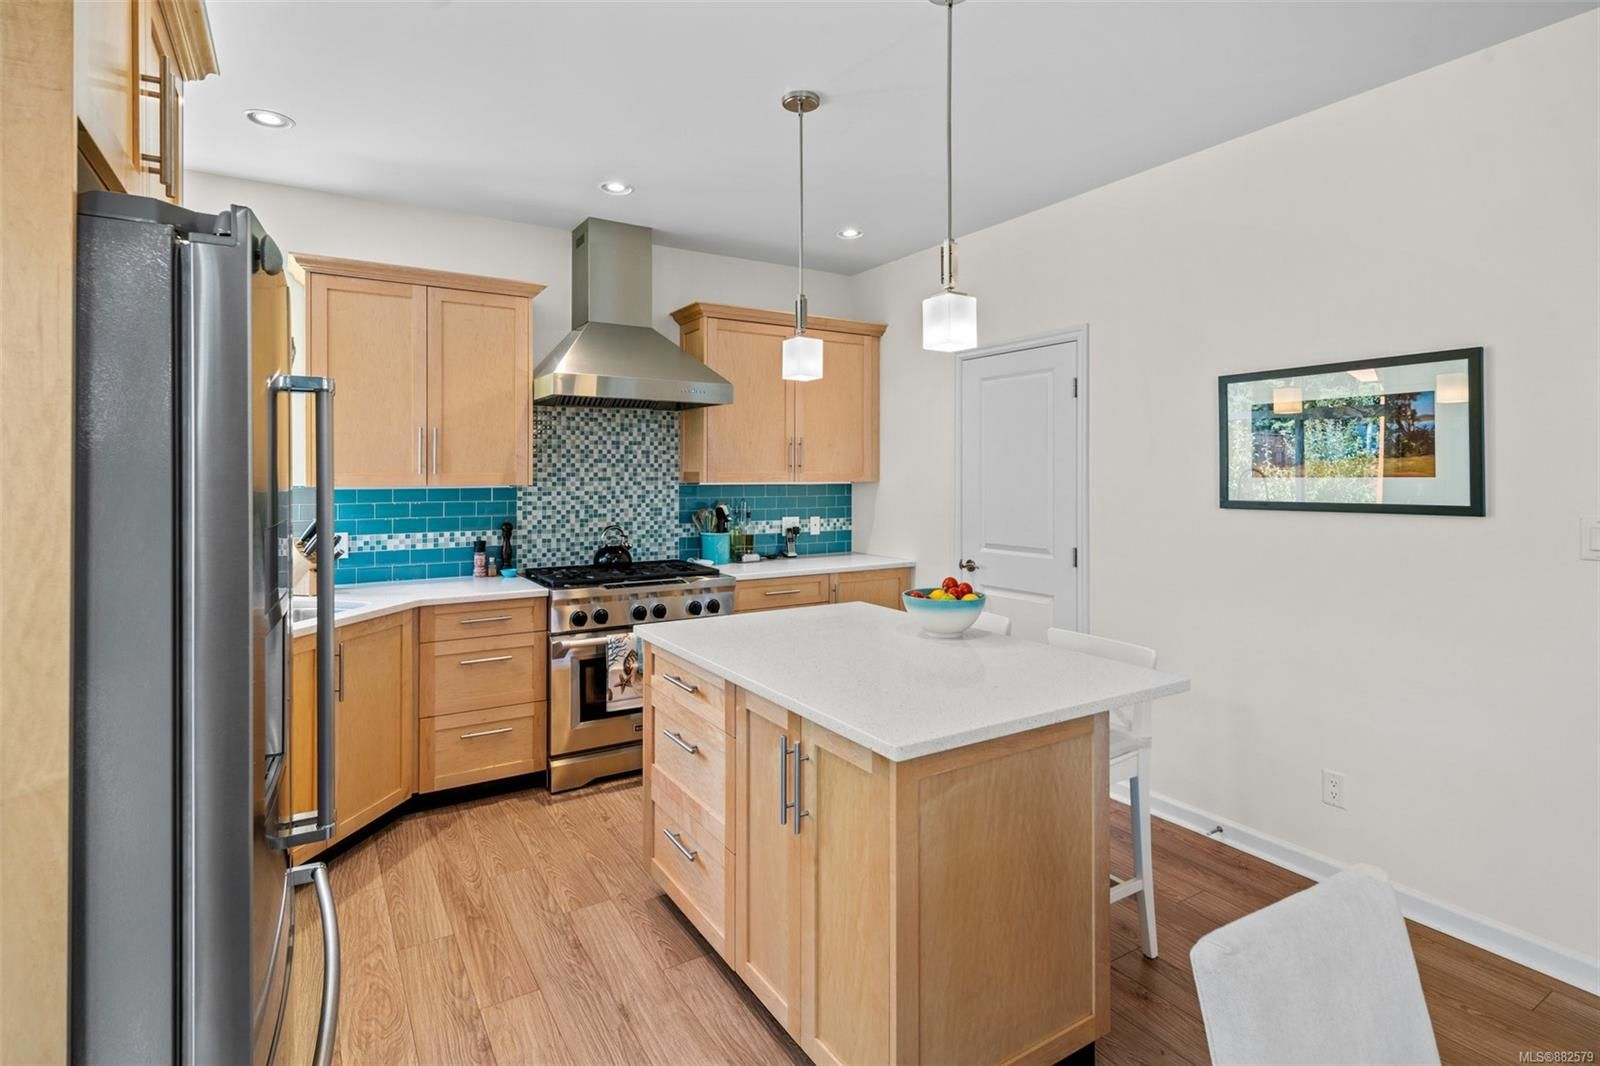 Photo 23: Photos: 2474 Anthony Pl in : Sk Sunriver House for sale (Sooke)  : MLS®# 882579